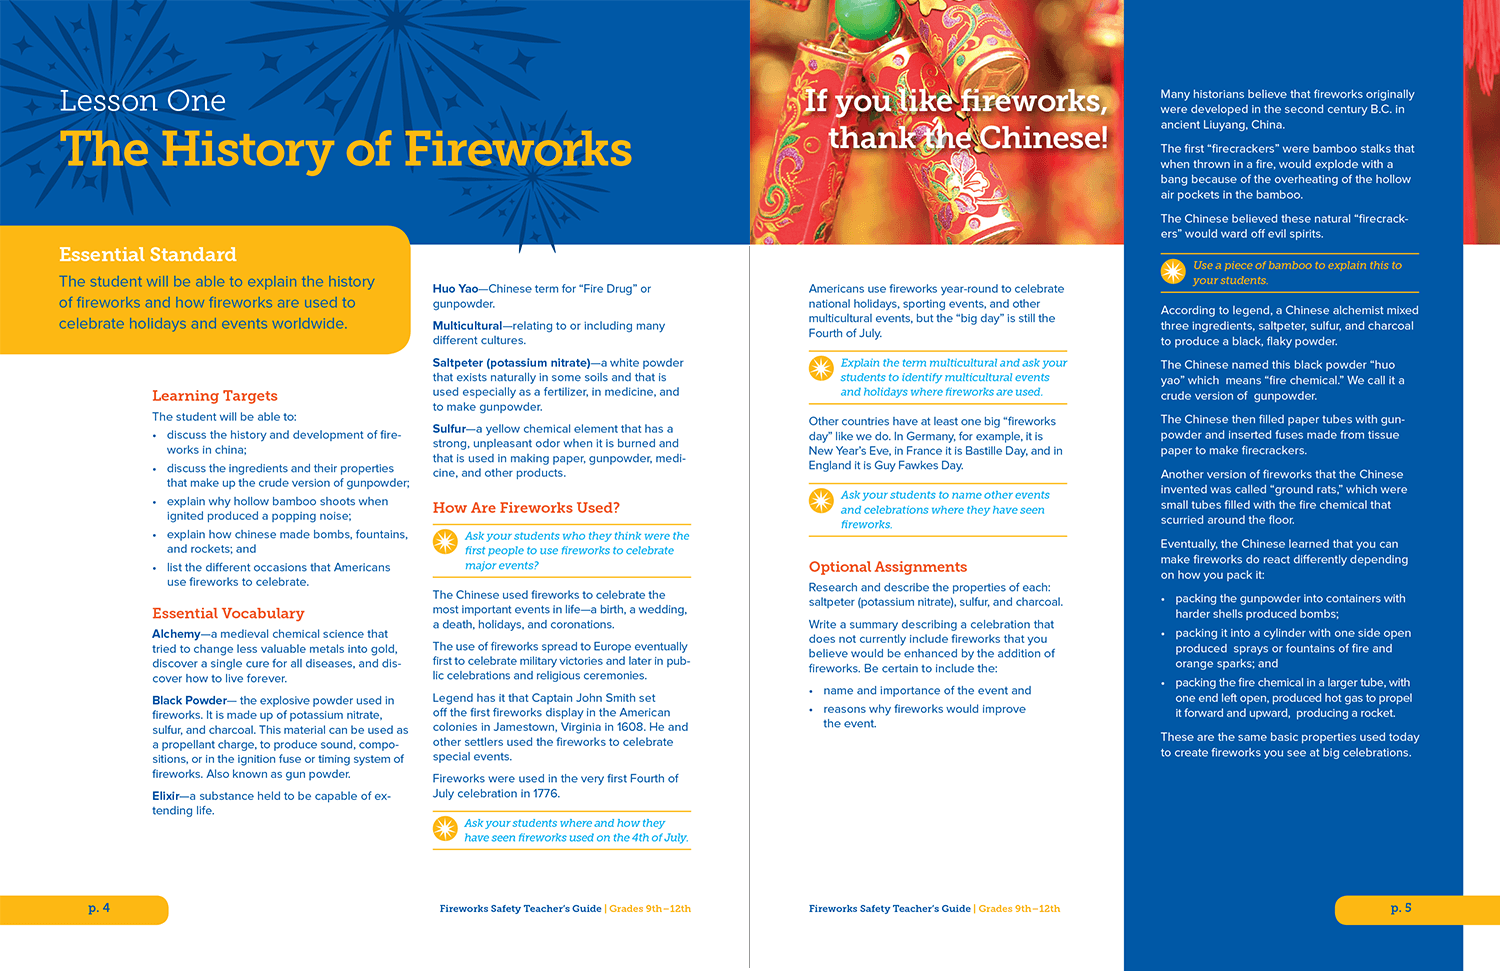 apa_fireworks-guide-3.png